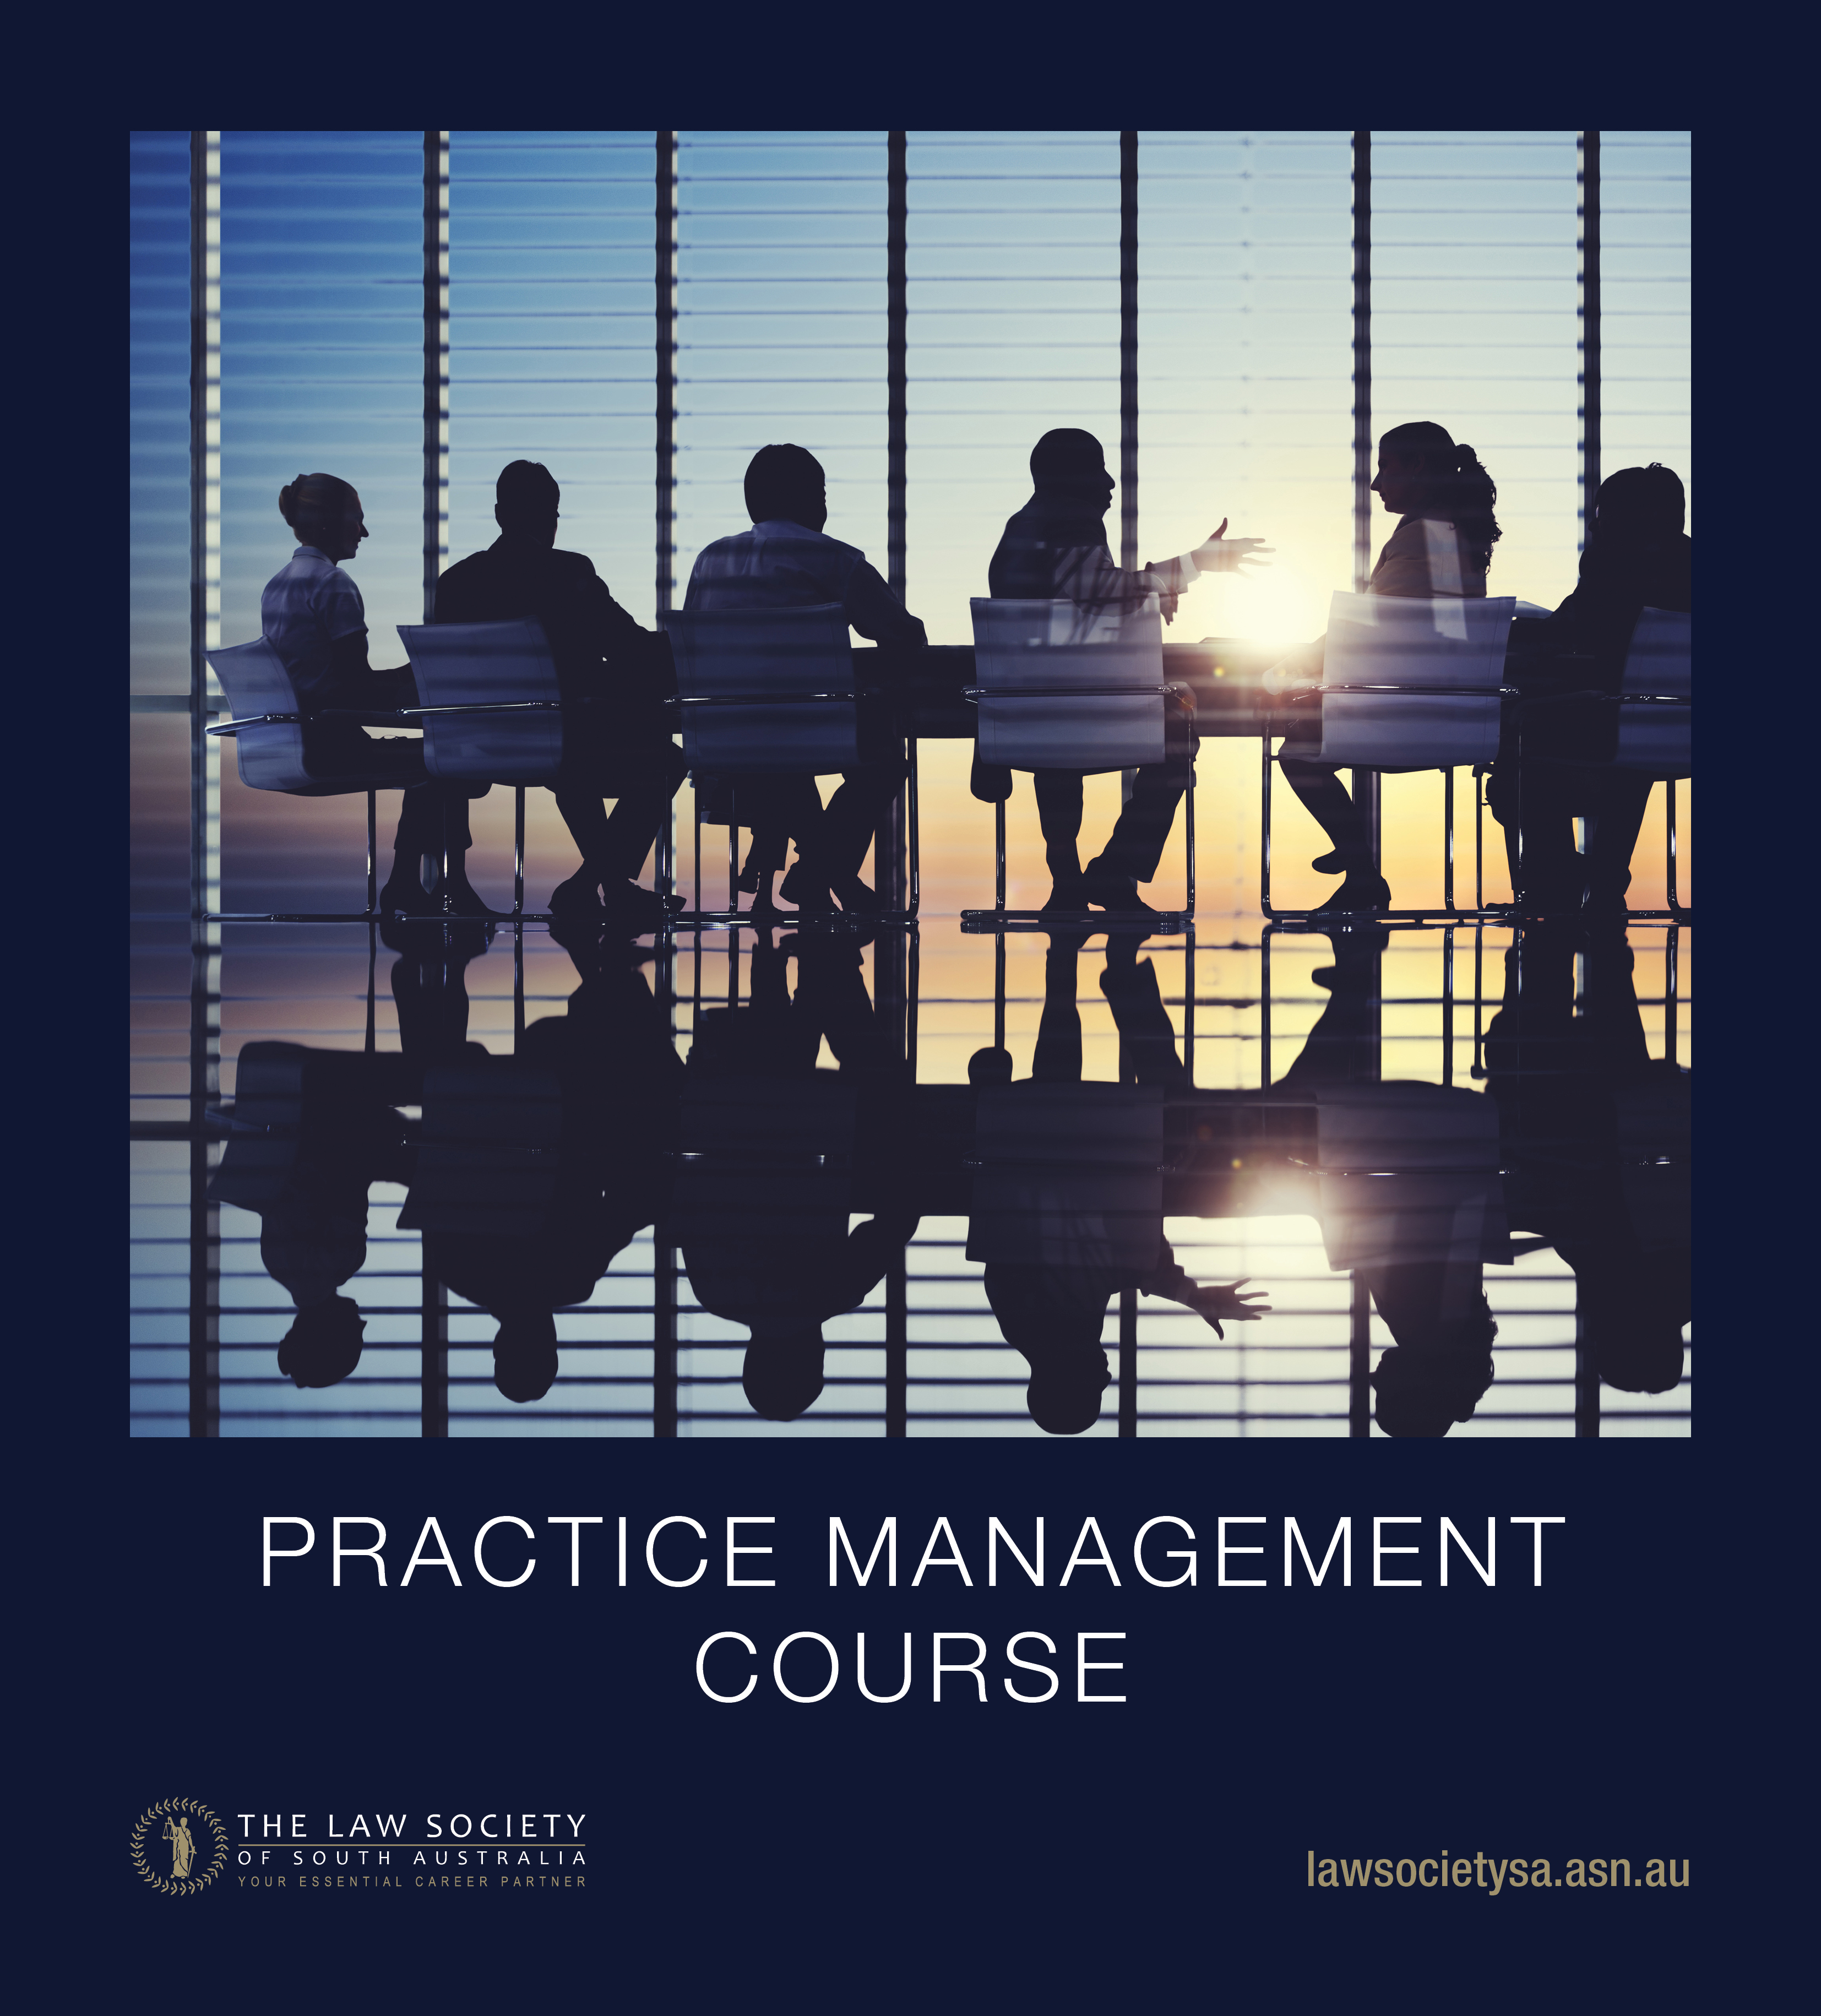 Practice Management Course